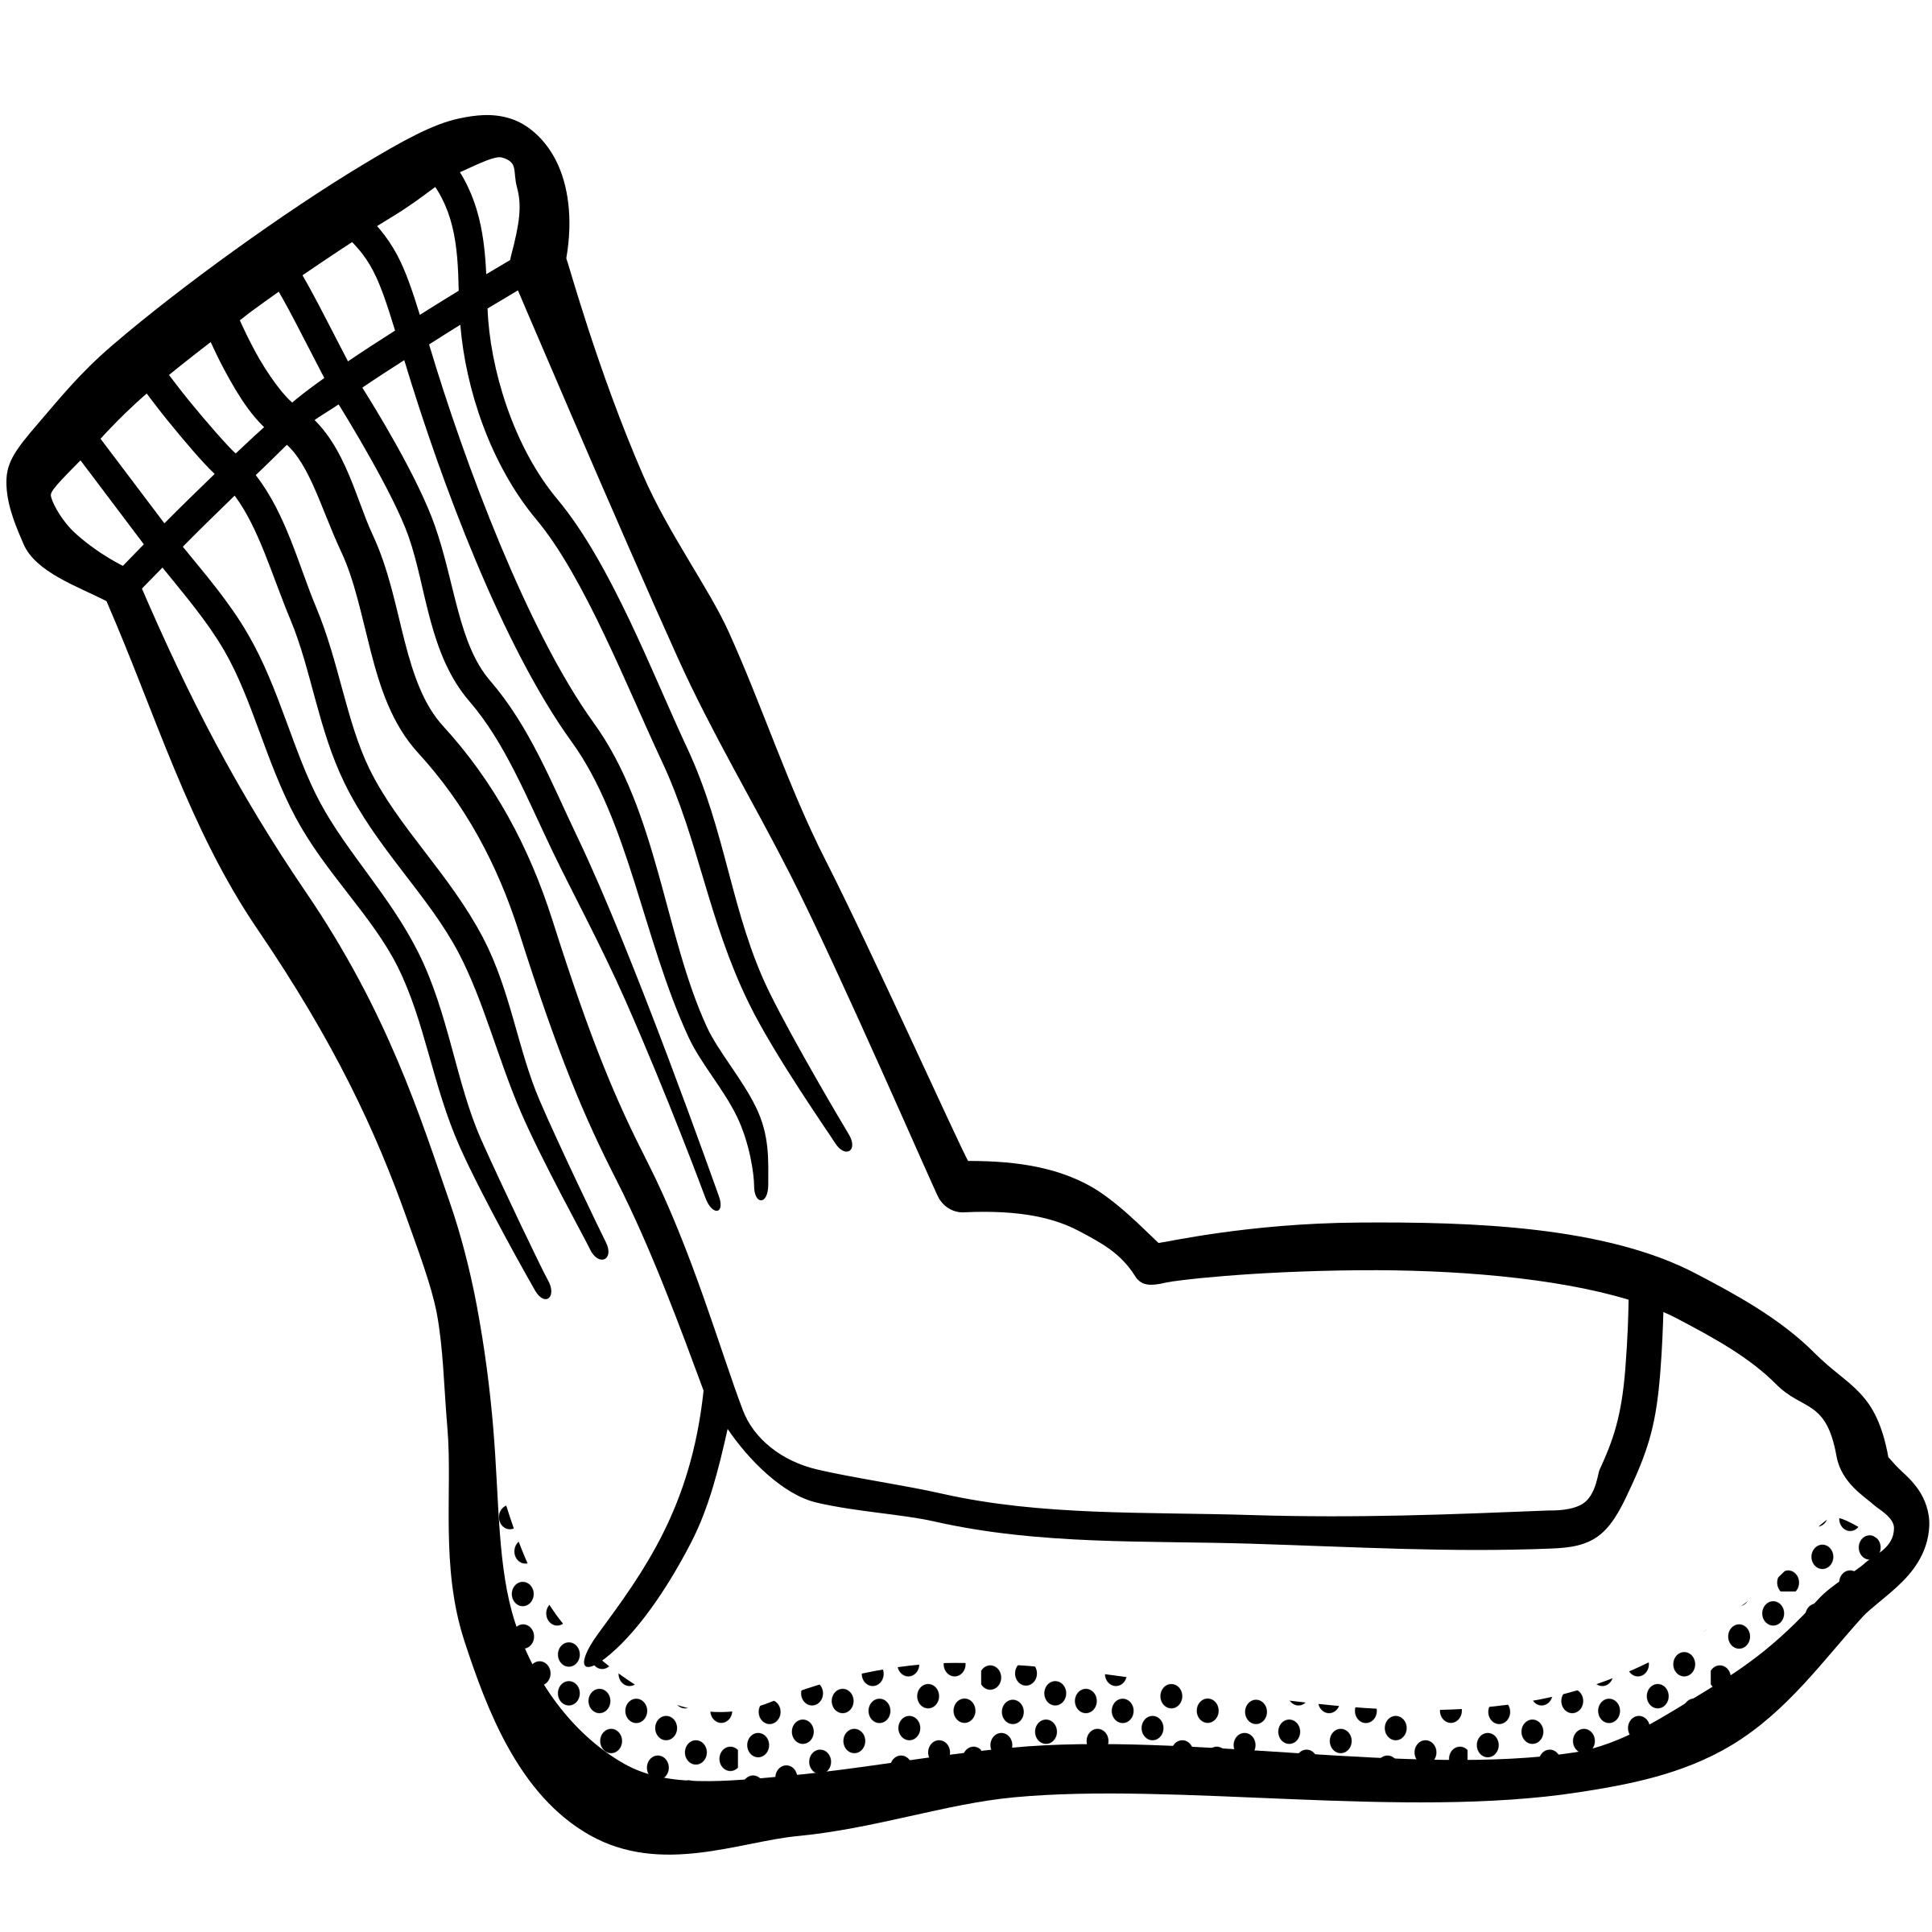 Sock clipart. Lineart big image png